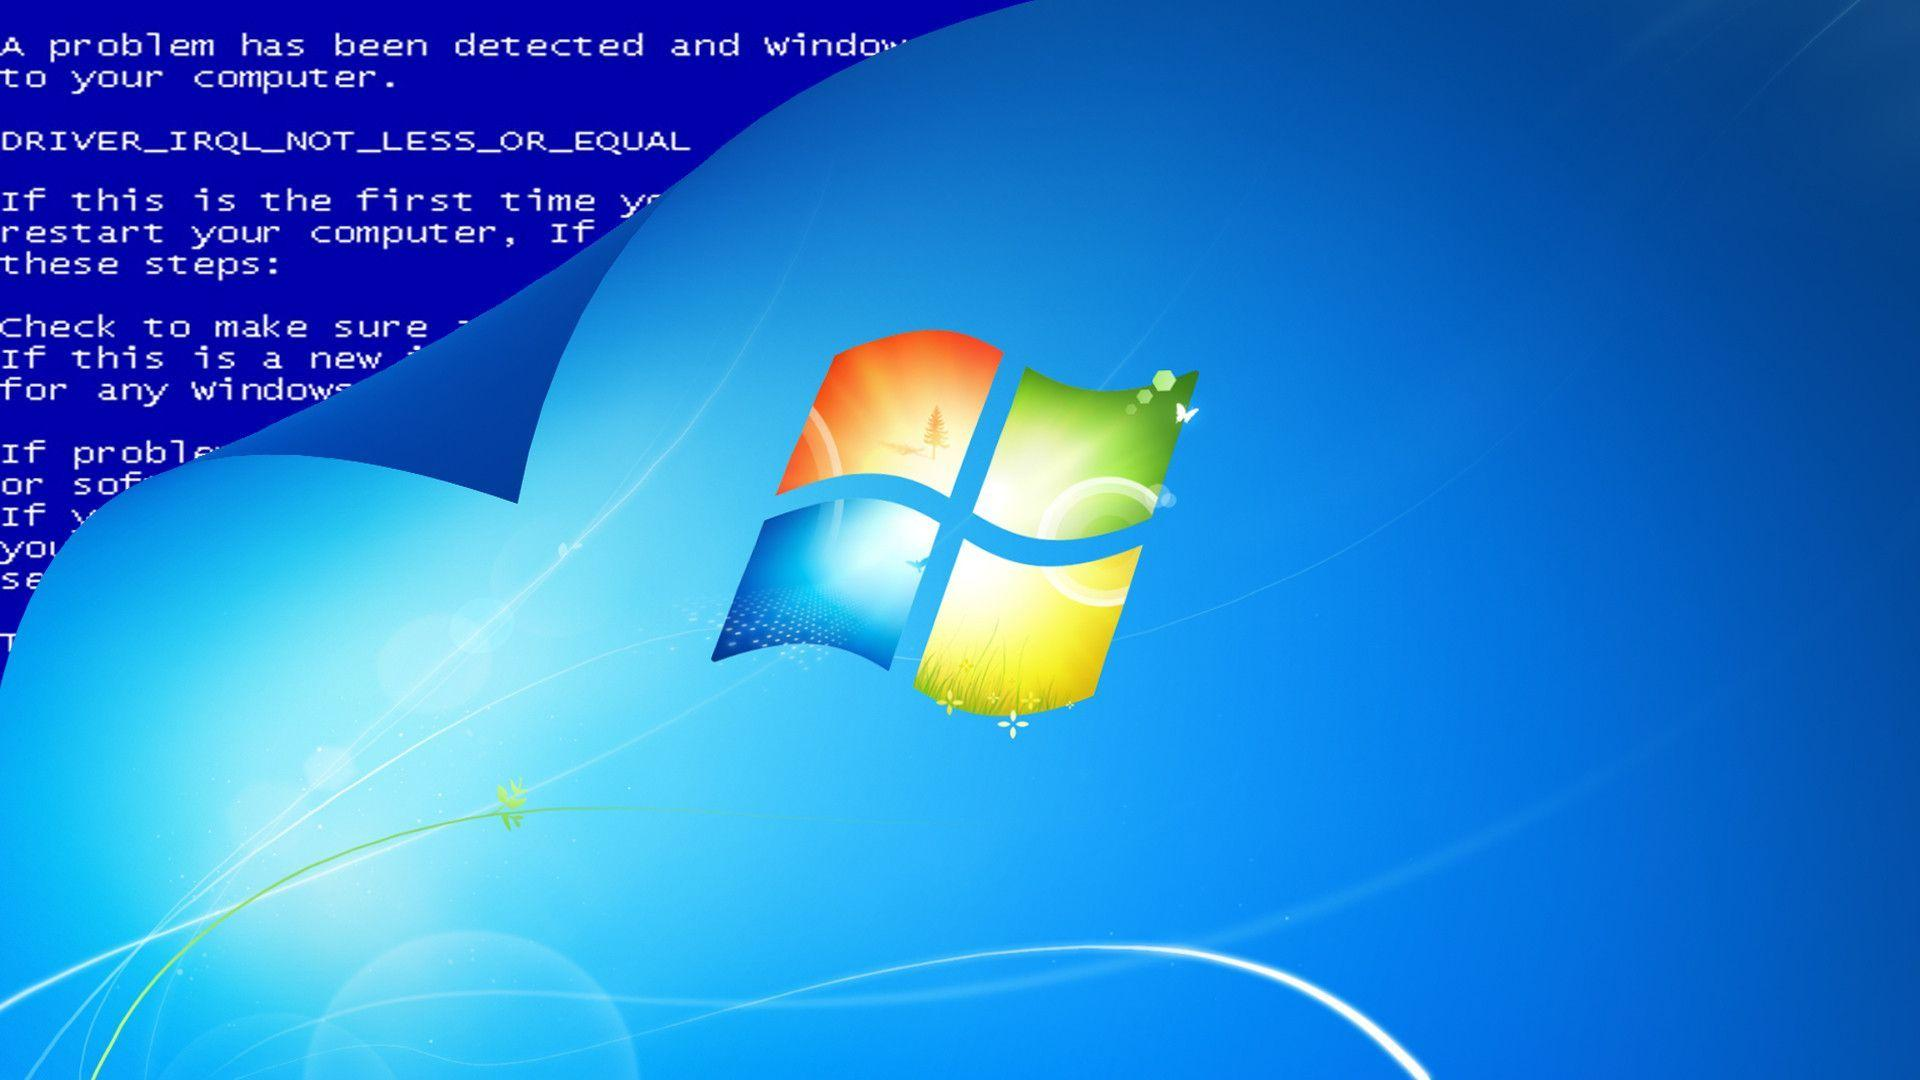 Wallpapers For > Funny Desktop Backgrounds For Windows 7